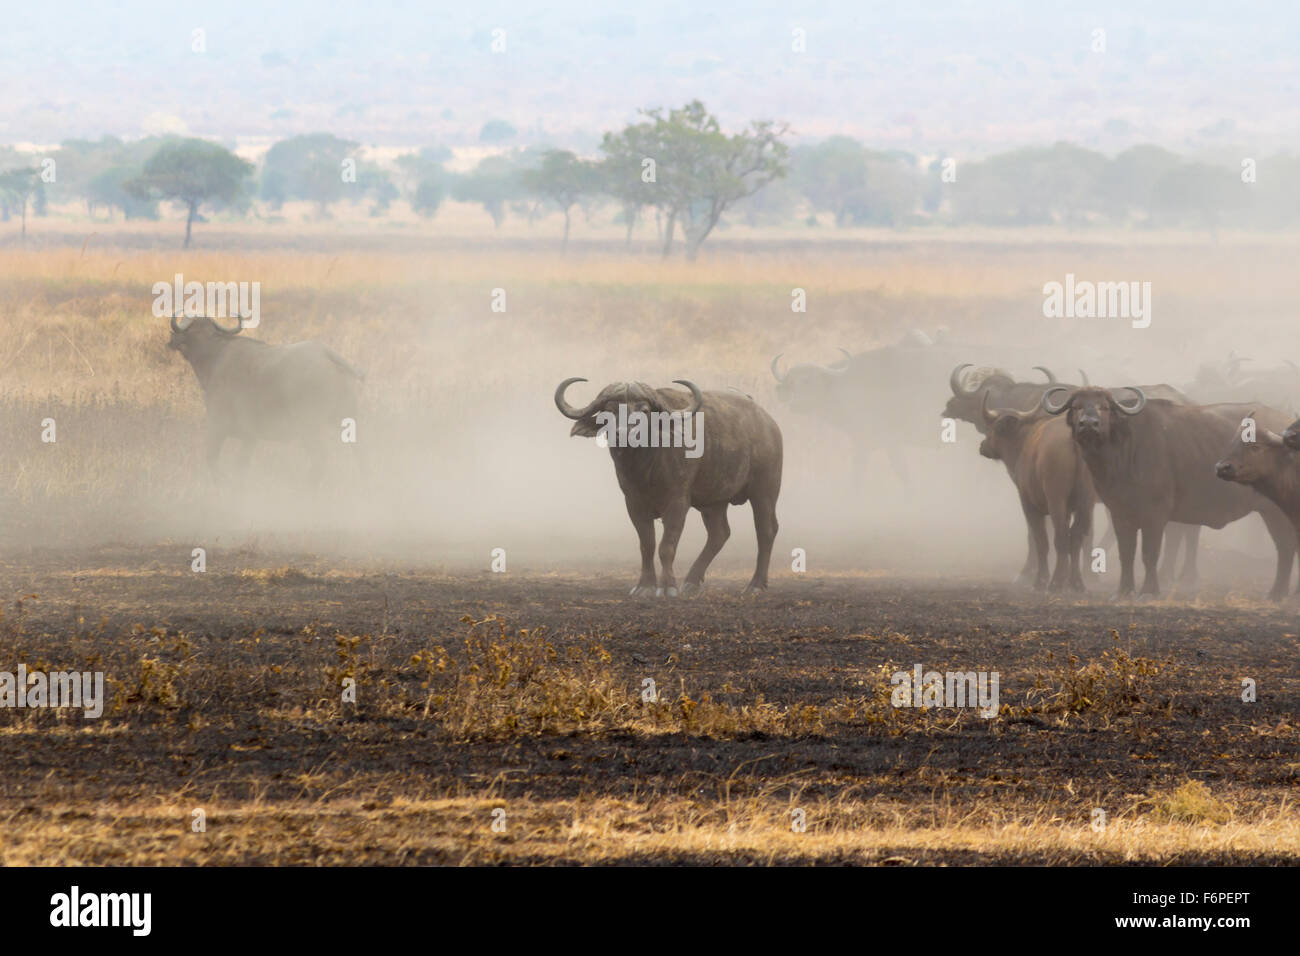 African bison in a dust cloud, photograph taken on safari in Tanzania - Stock Image